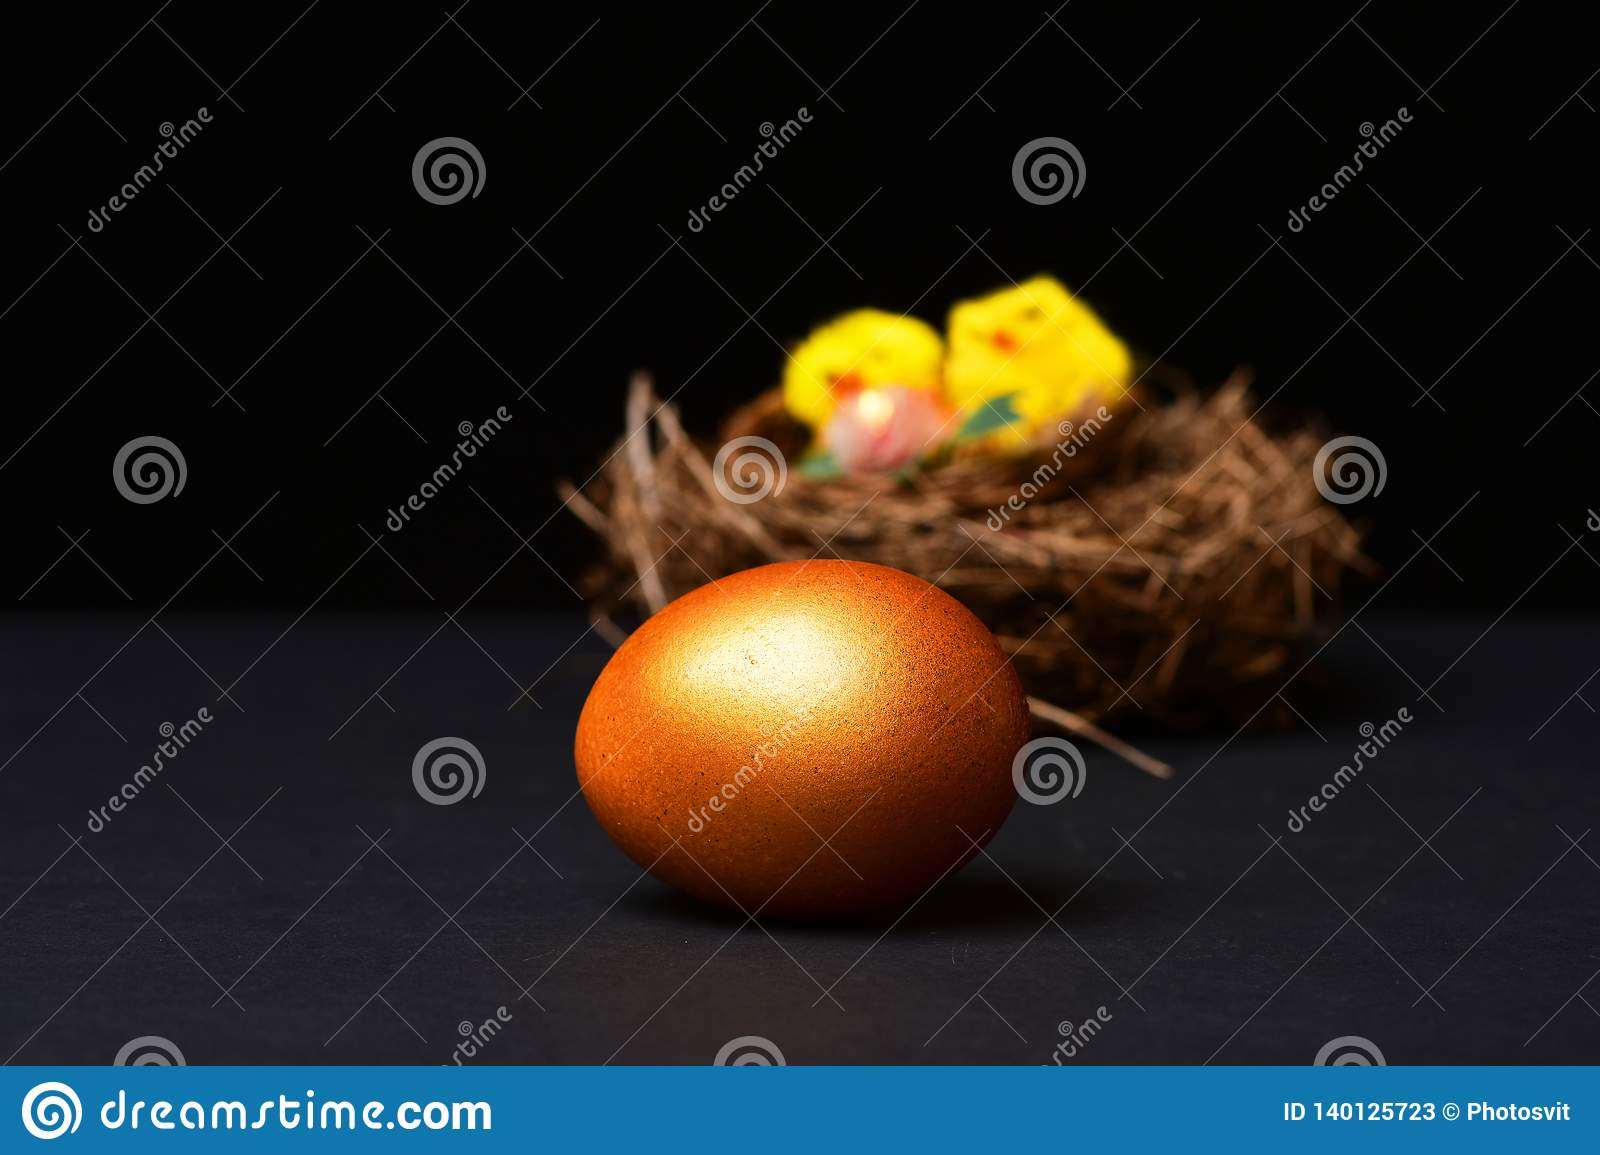 Traditional egg painted in golden color in selective focus with nest on black background. Happy Easter, farming and